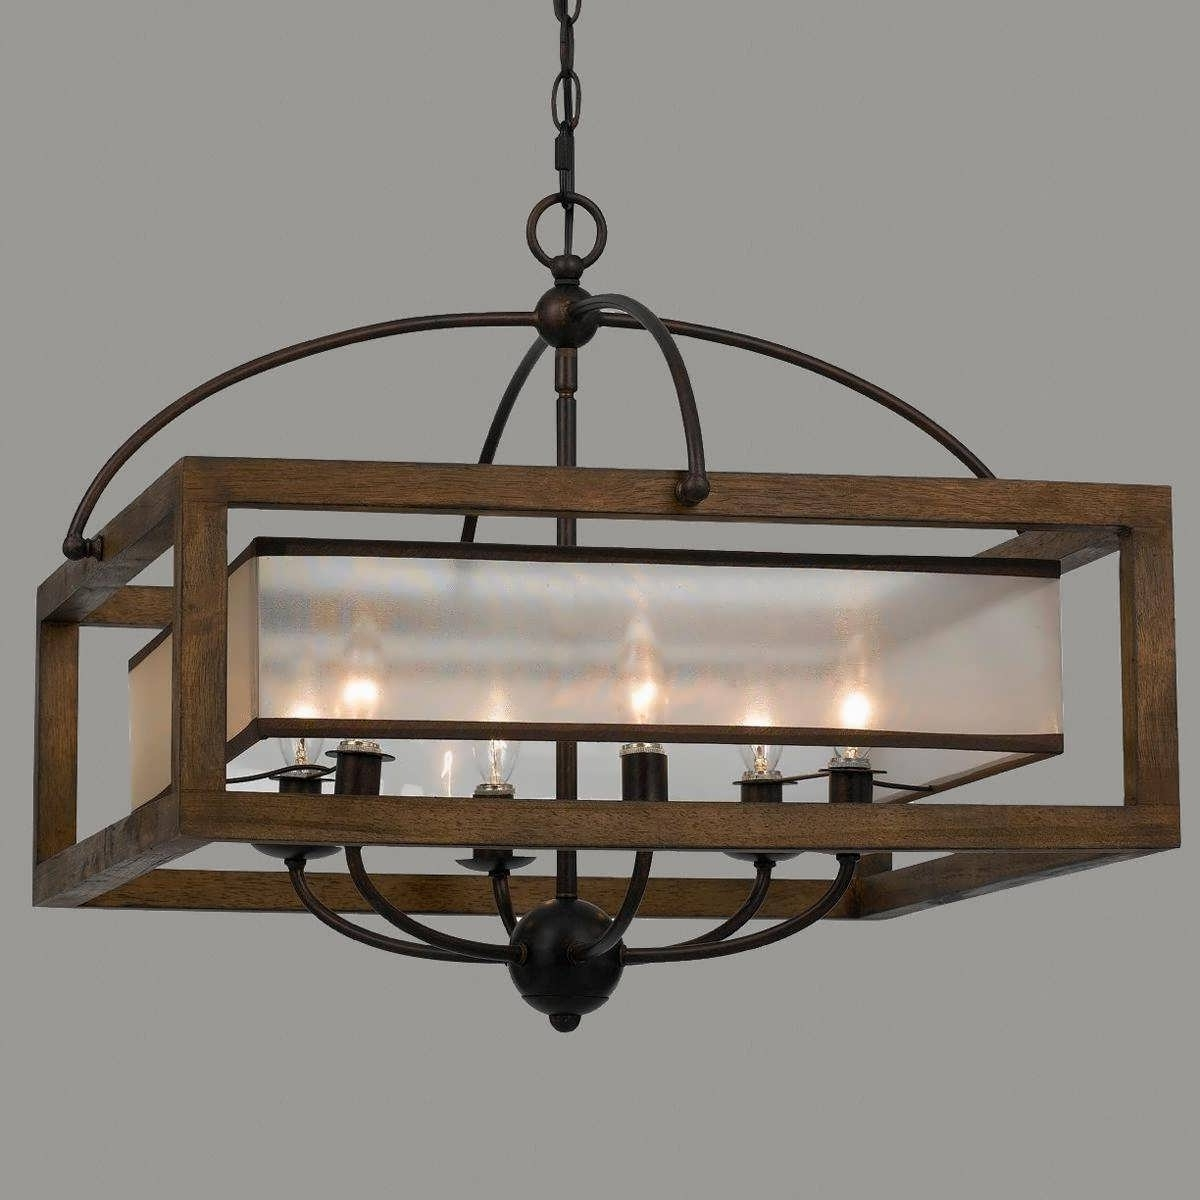 Small Rustic Chandeliers For Favorite Chandelier : Extra Large Rustic Chandeliers Iron Chandelier Wood And (View 14 of 20)